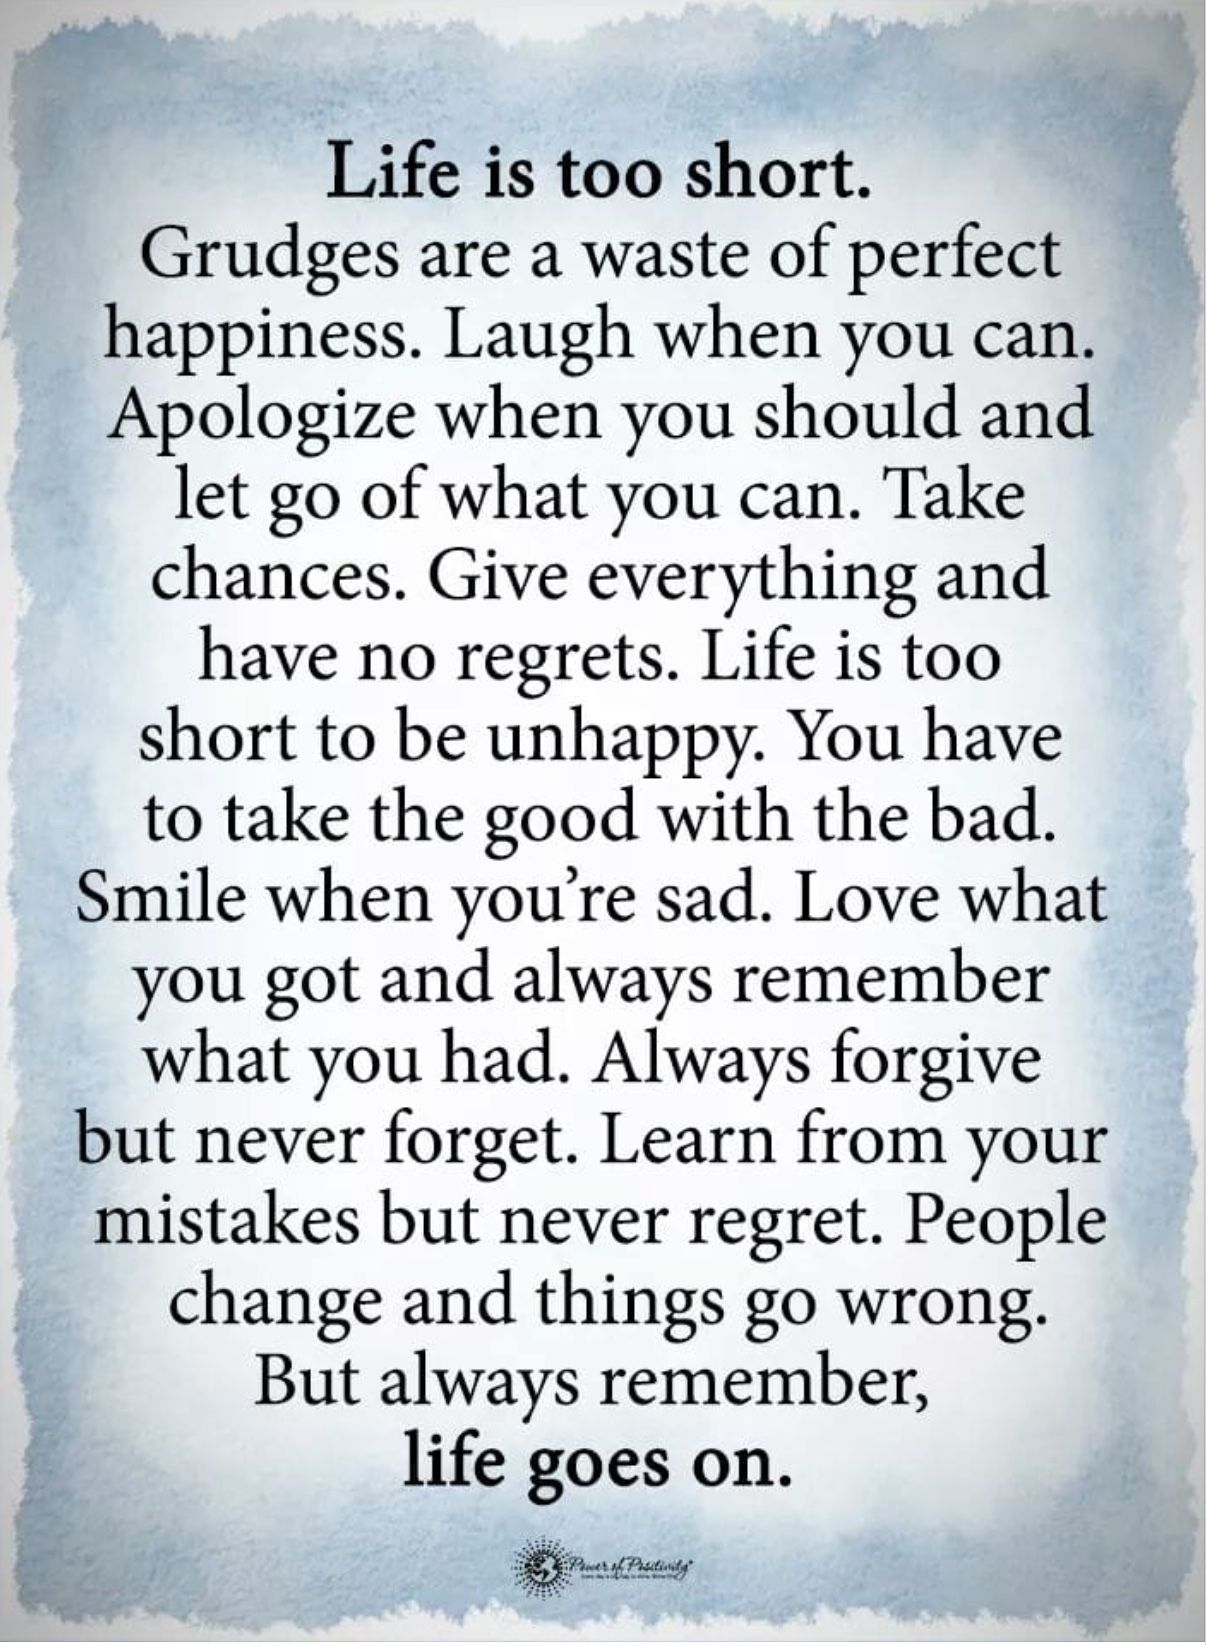 article, quotes, and meaningful life quotes image